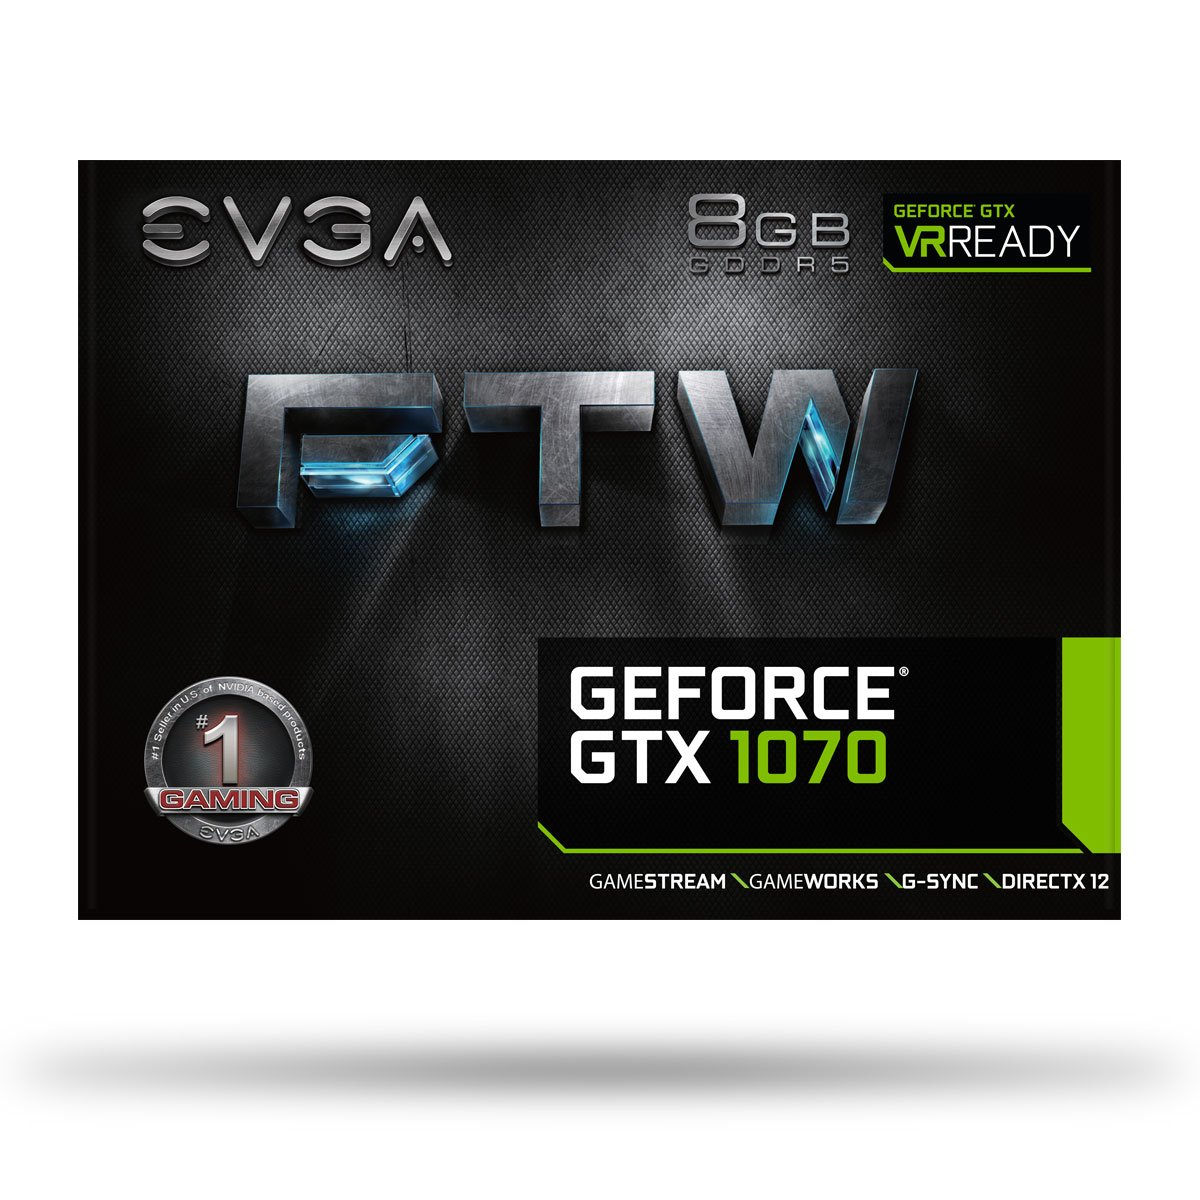 EVGA GeForce GTX 1070 FTW GAMING ACX 3.0, 8GB GDDR5, RGB LED, 10CM FAN, 10 Power Phases, Double BIOS, DX12 OSD Support (PXOC) Graphics Card 08G-P4-6276-KR by EVGA (Image #8)